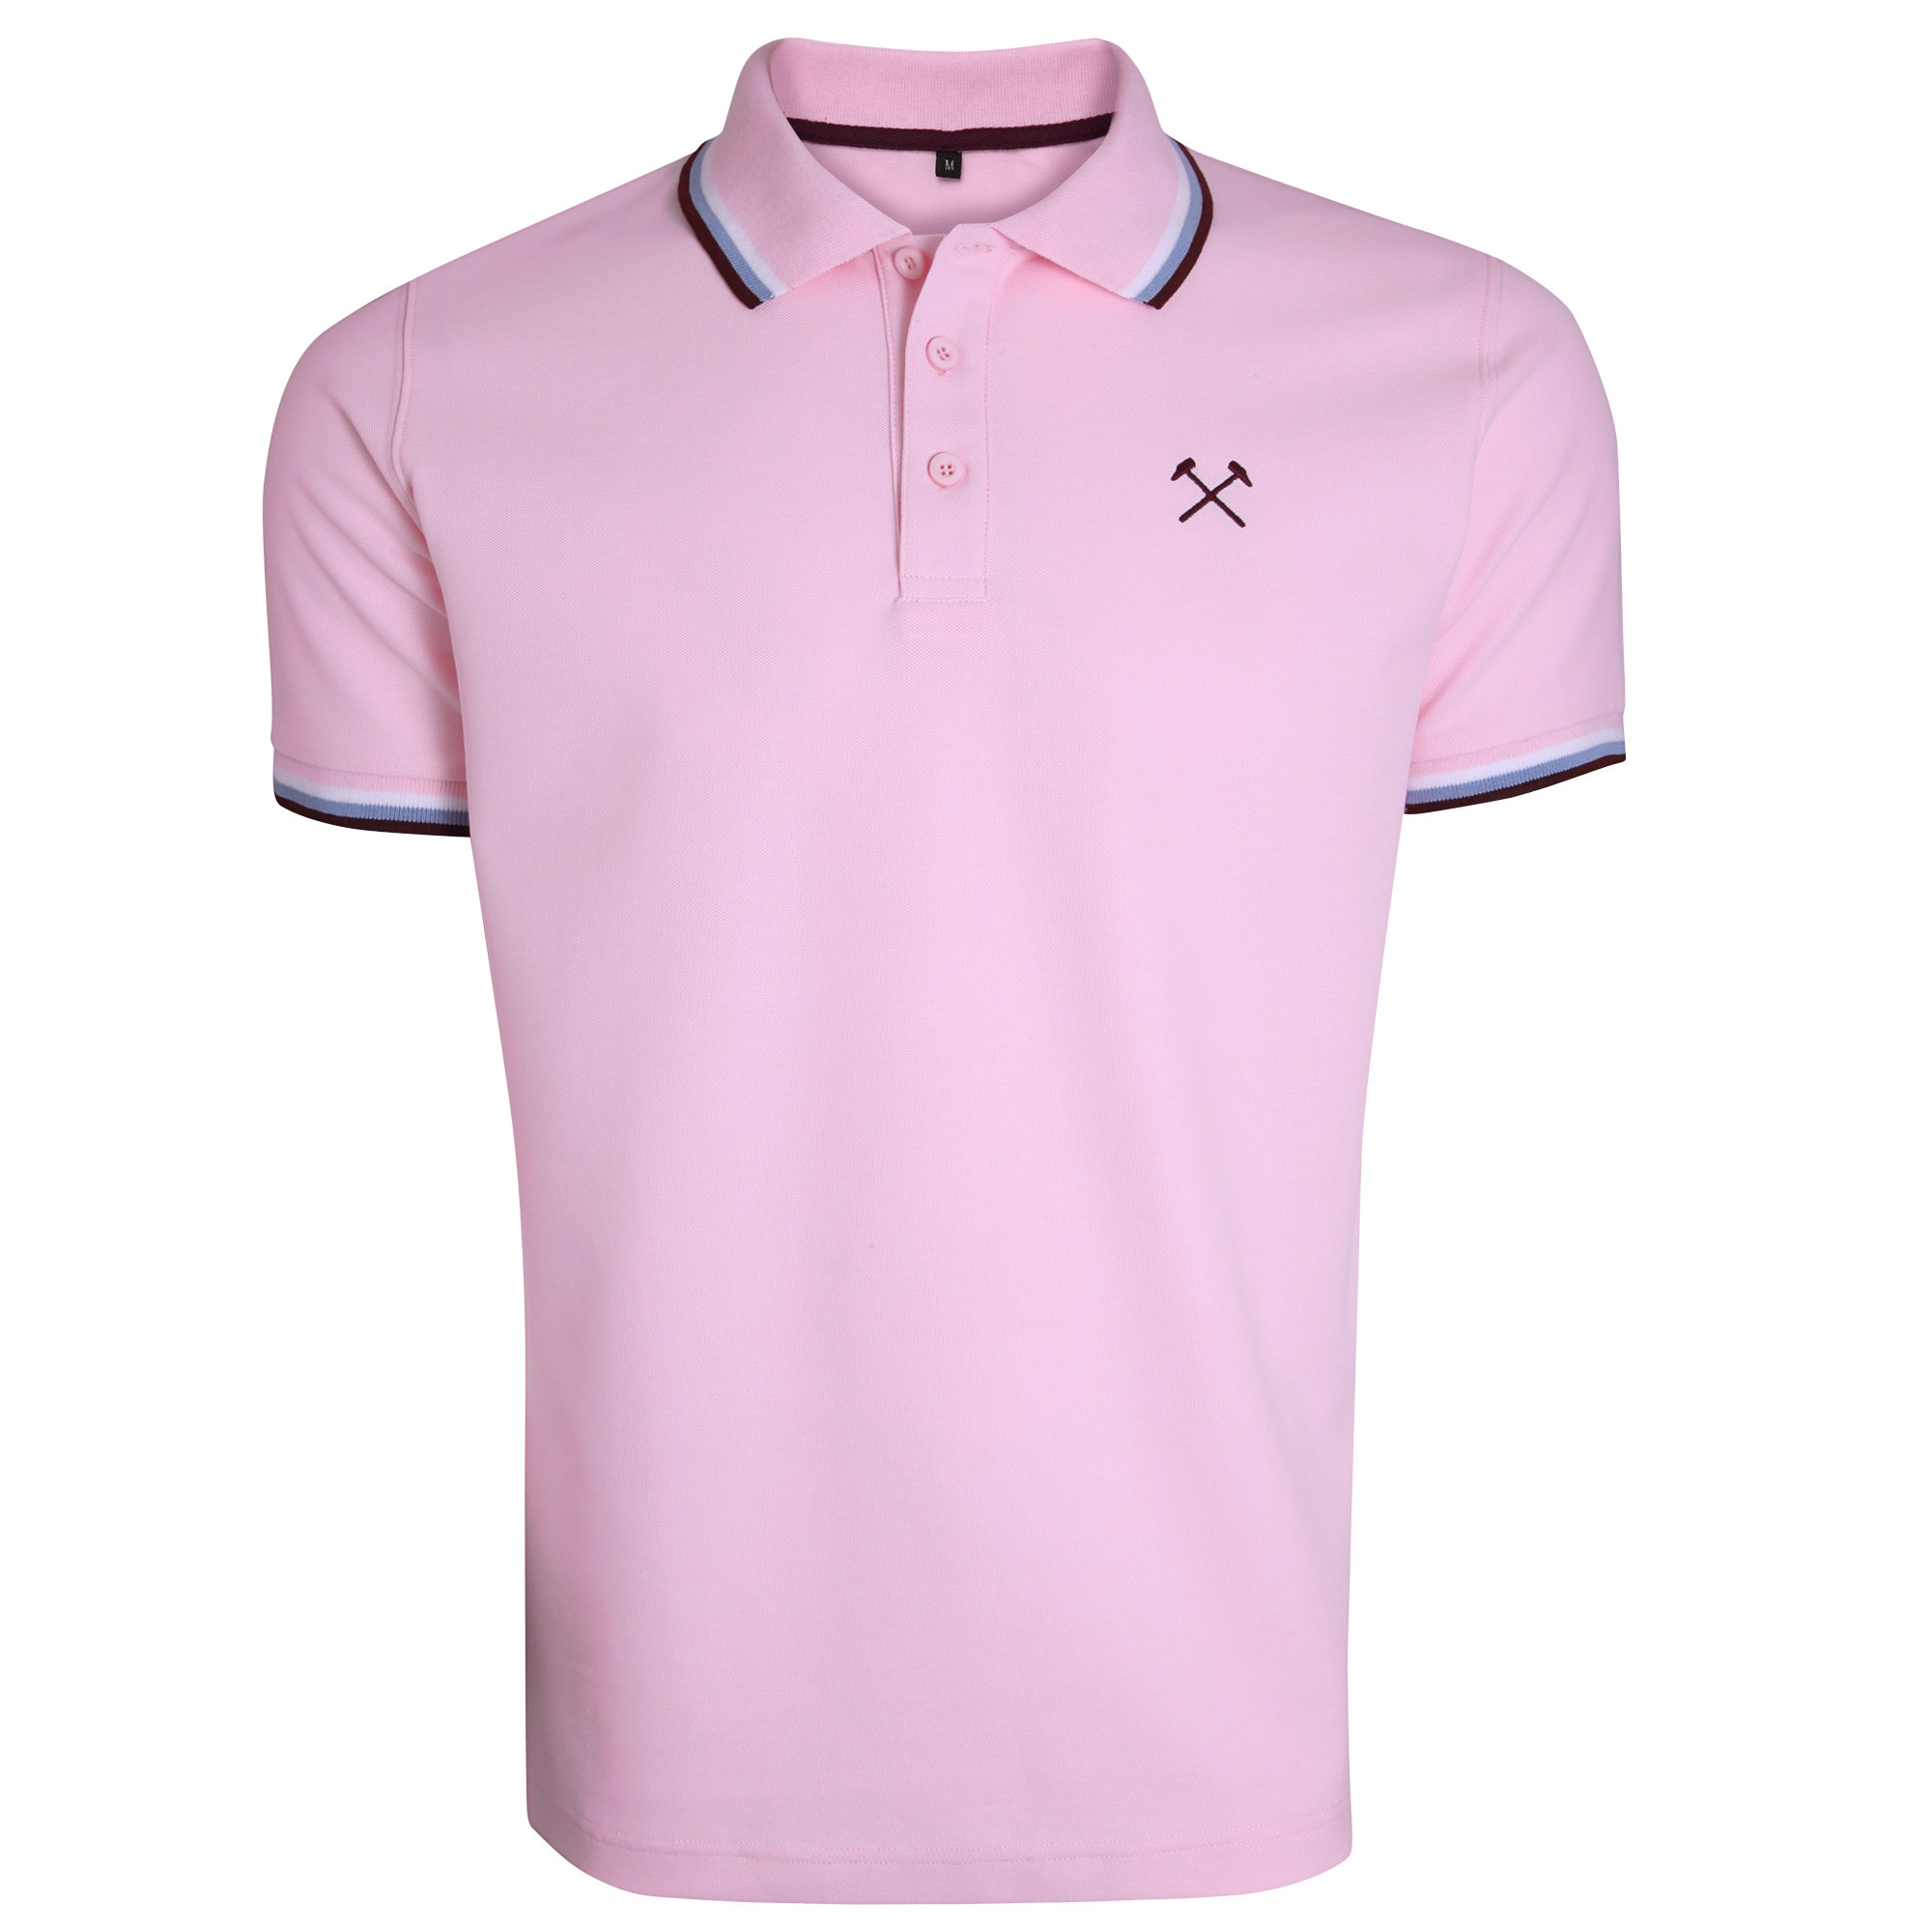 LIGHT PINK TIPPED HAMMERS POLO